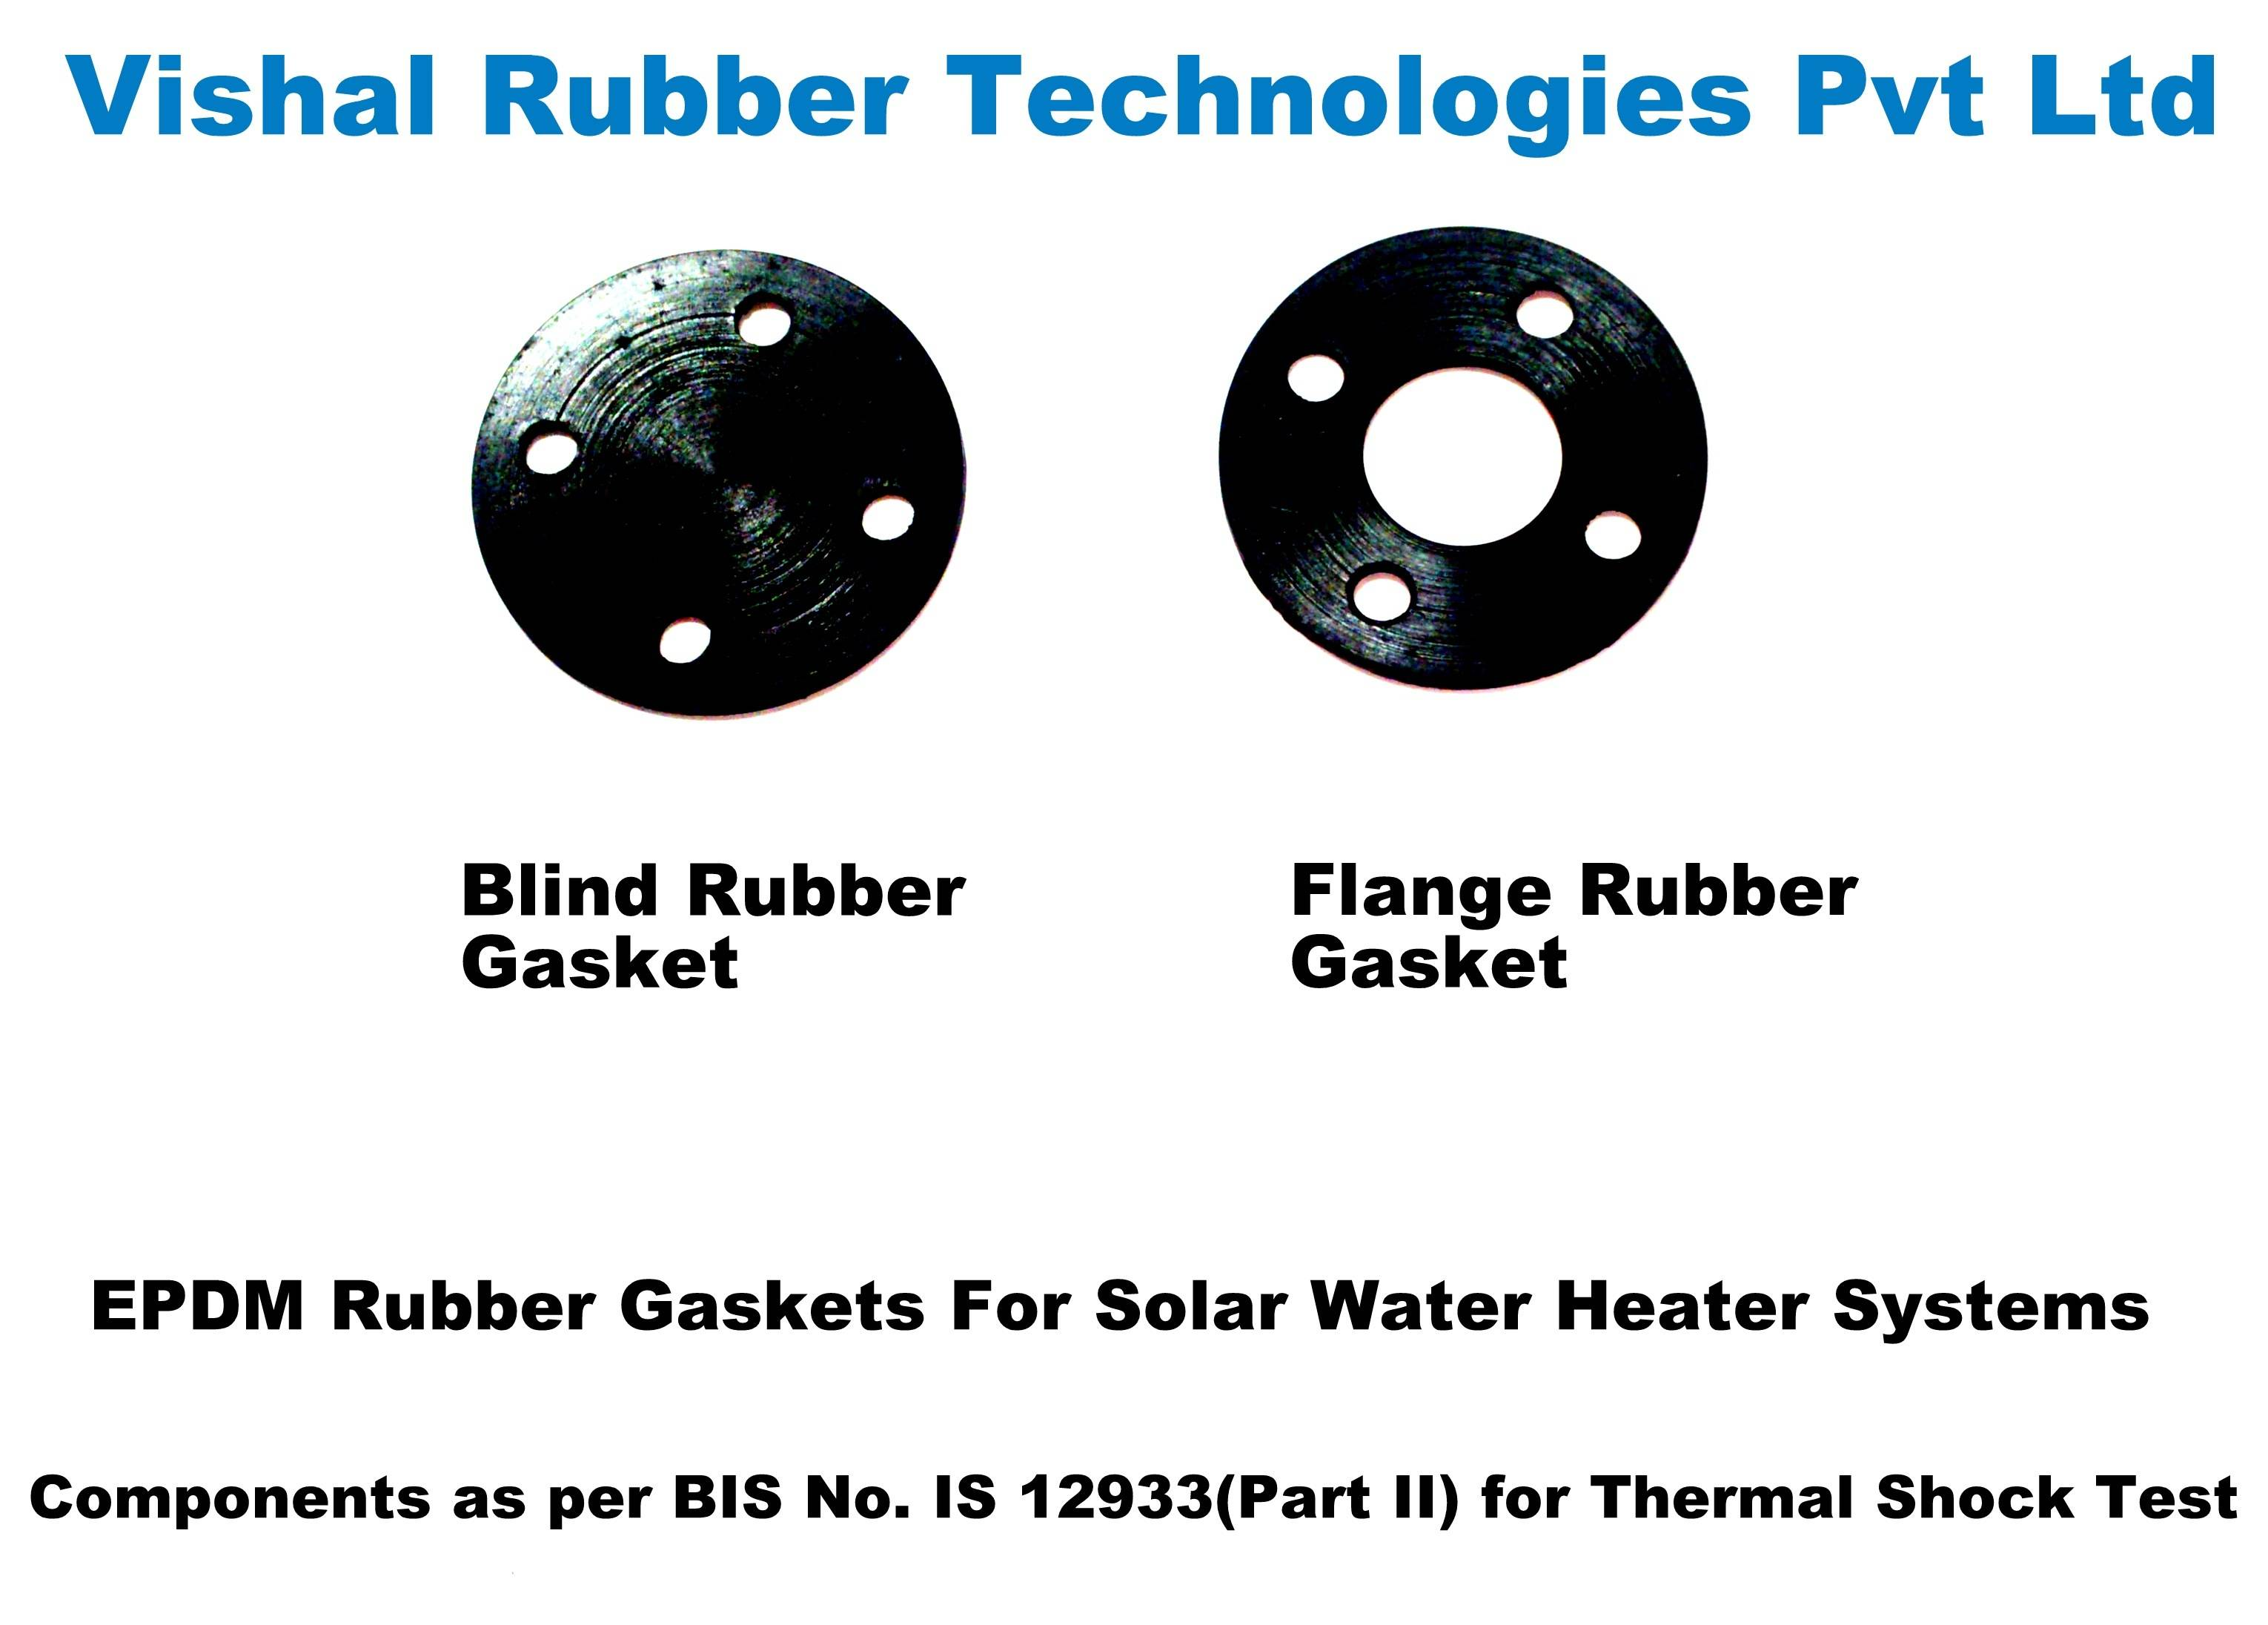 Blind and Flange EPDM Rubber Gaskets for Solar Water Heaters